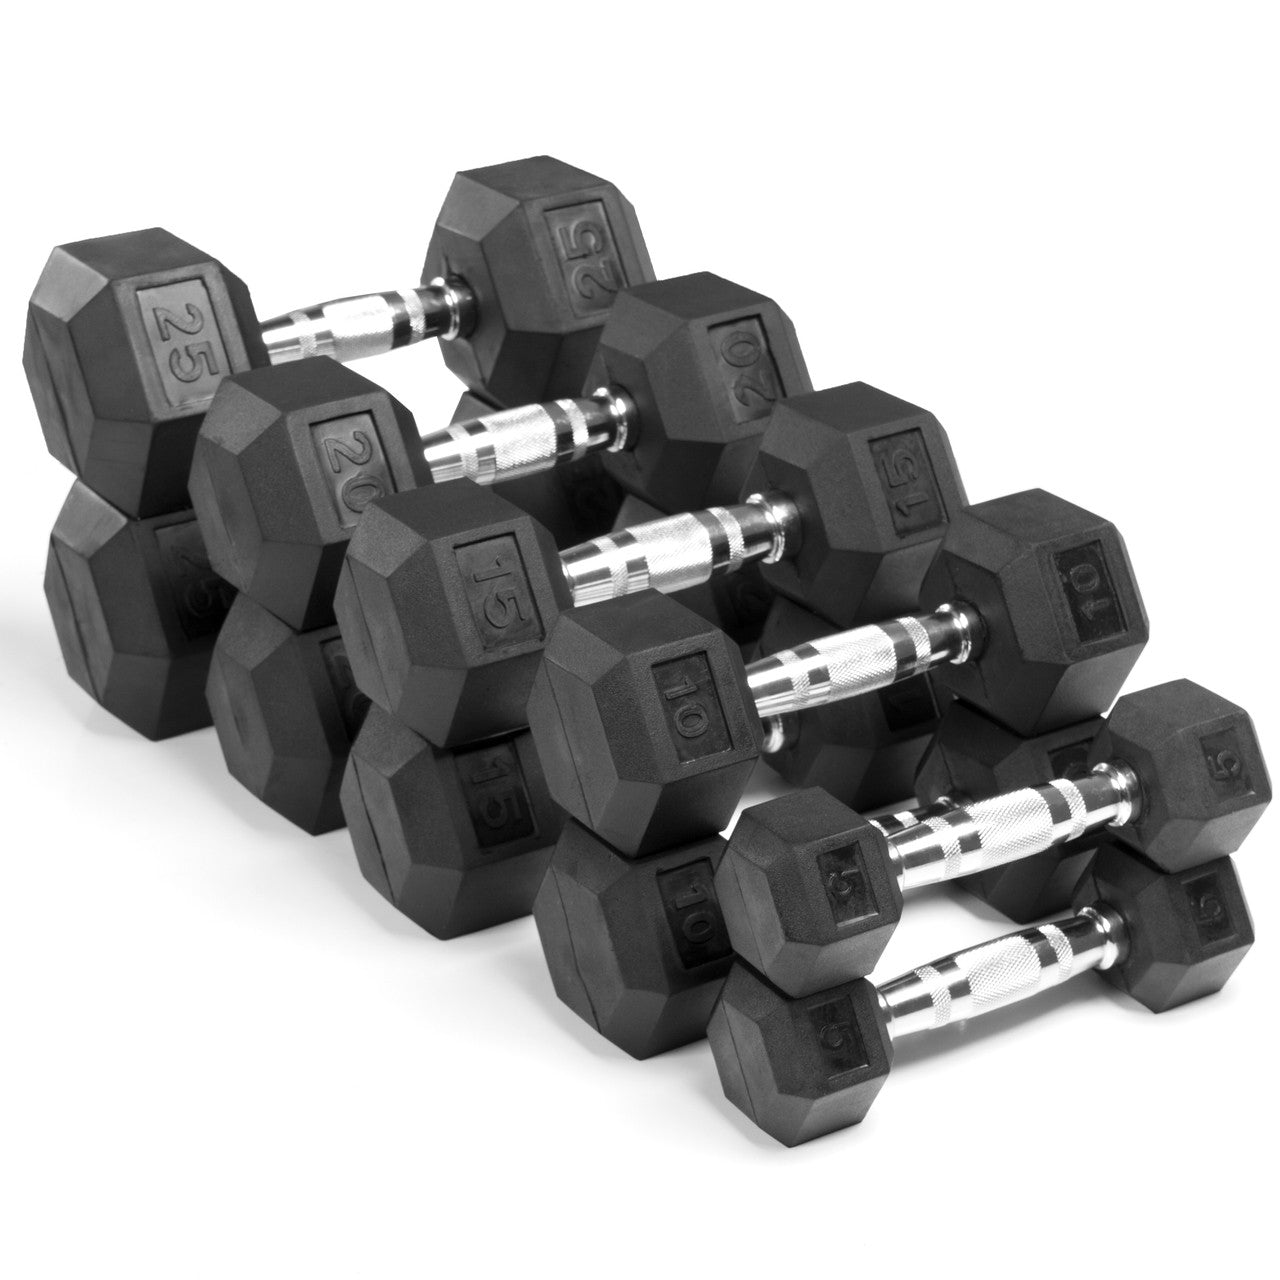 Merveilleux XMark Fitness 5 Lb. To 25 Lb. Rubber Hex Dumbbell Set XM 3301 150S